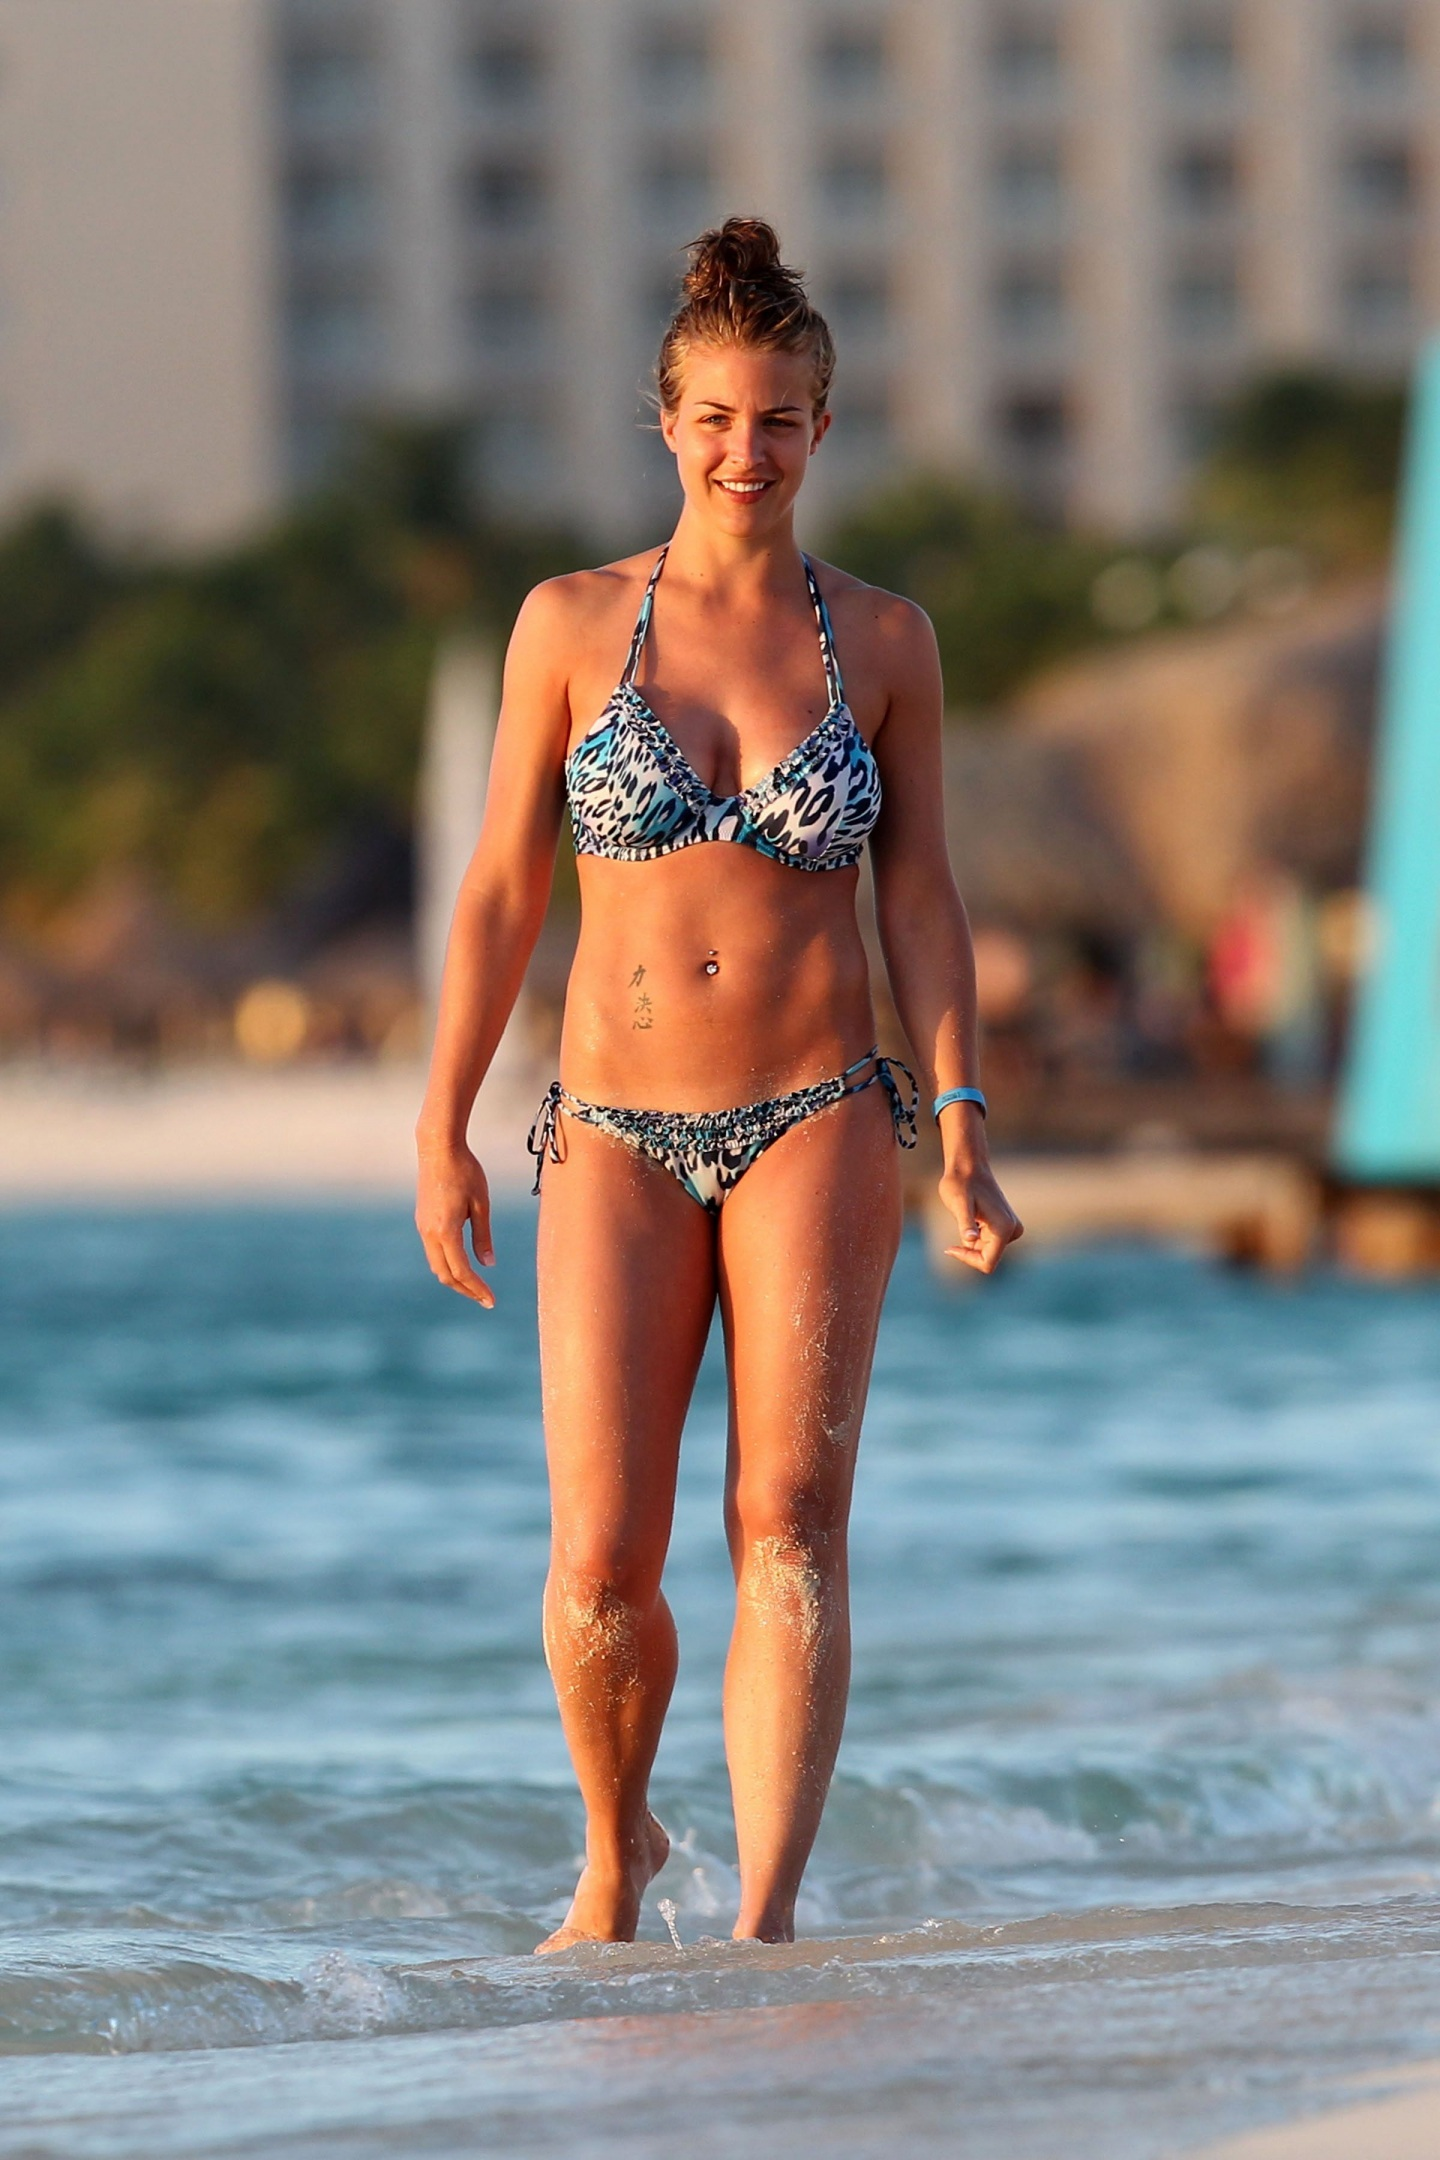 Gemma Atkinson Bikini Beach Candids In Aruba Tv